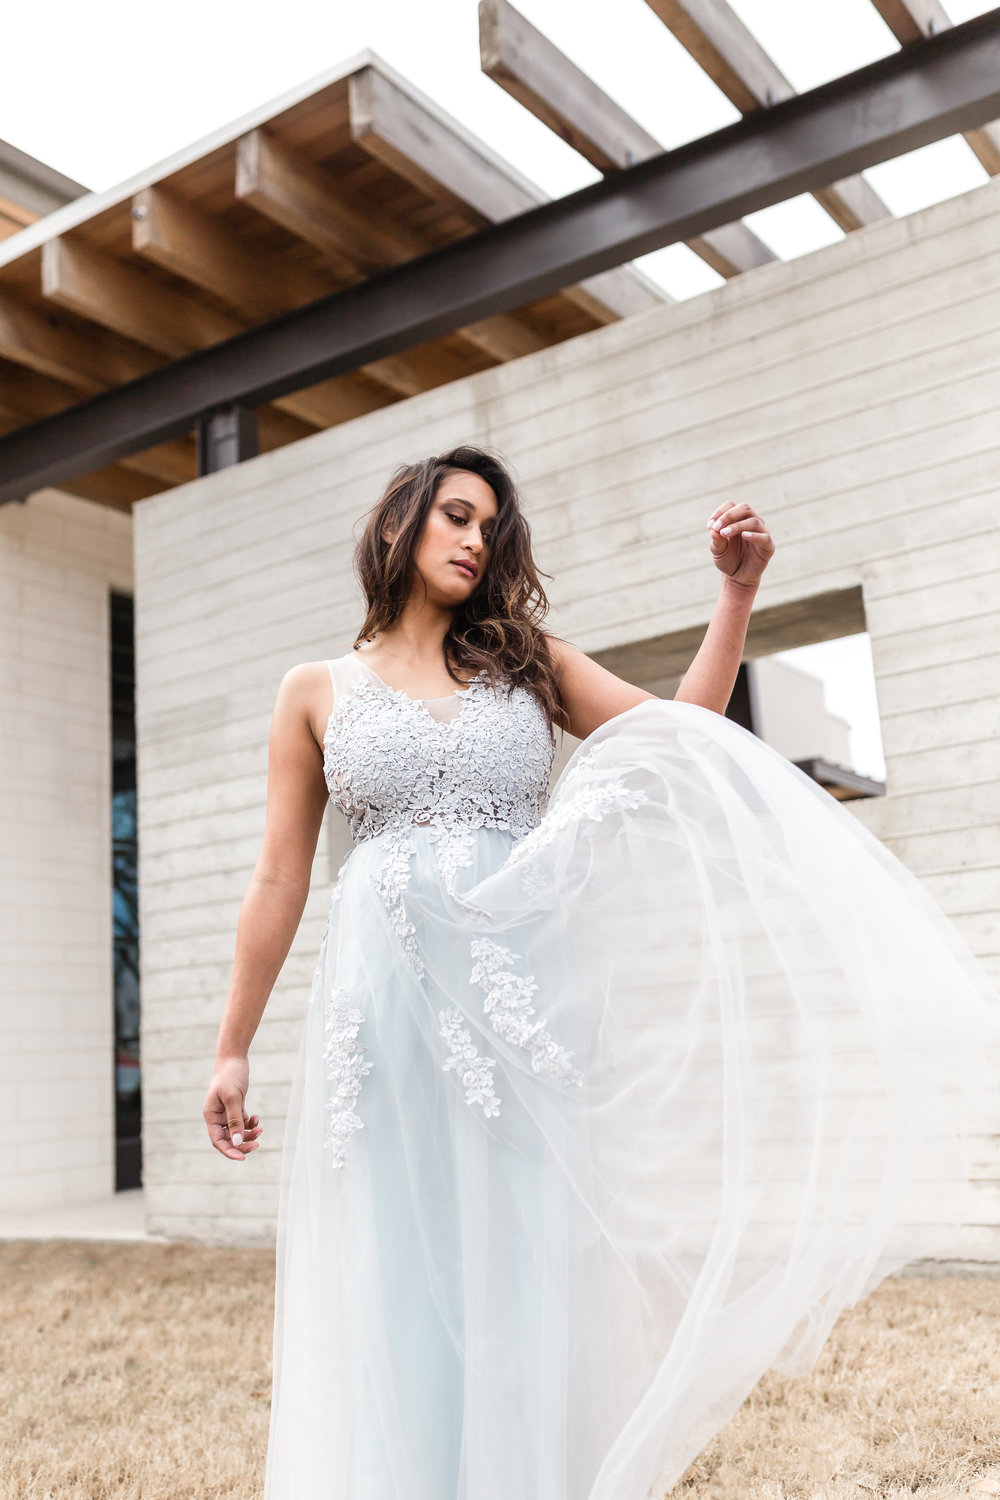 Dakota & Co. | Austin Photographer - Woman in gown editorial style photo